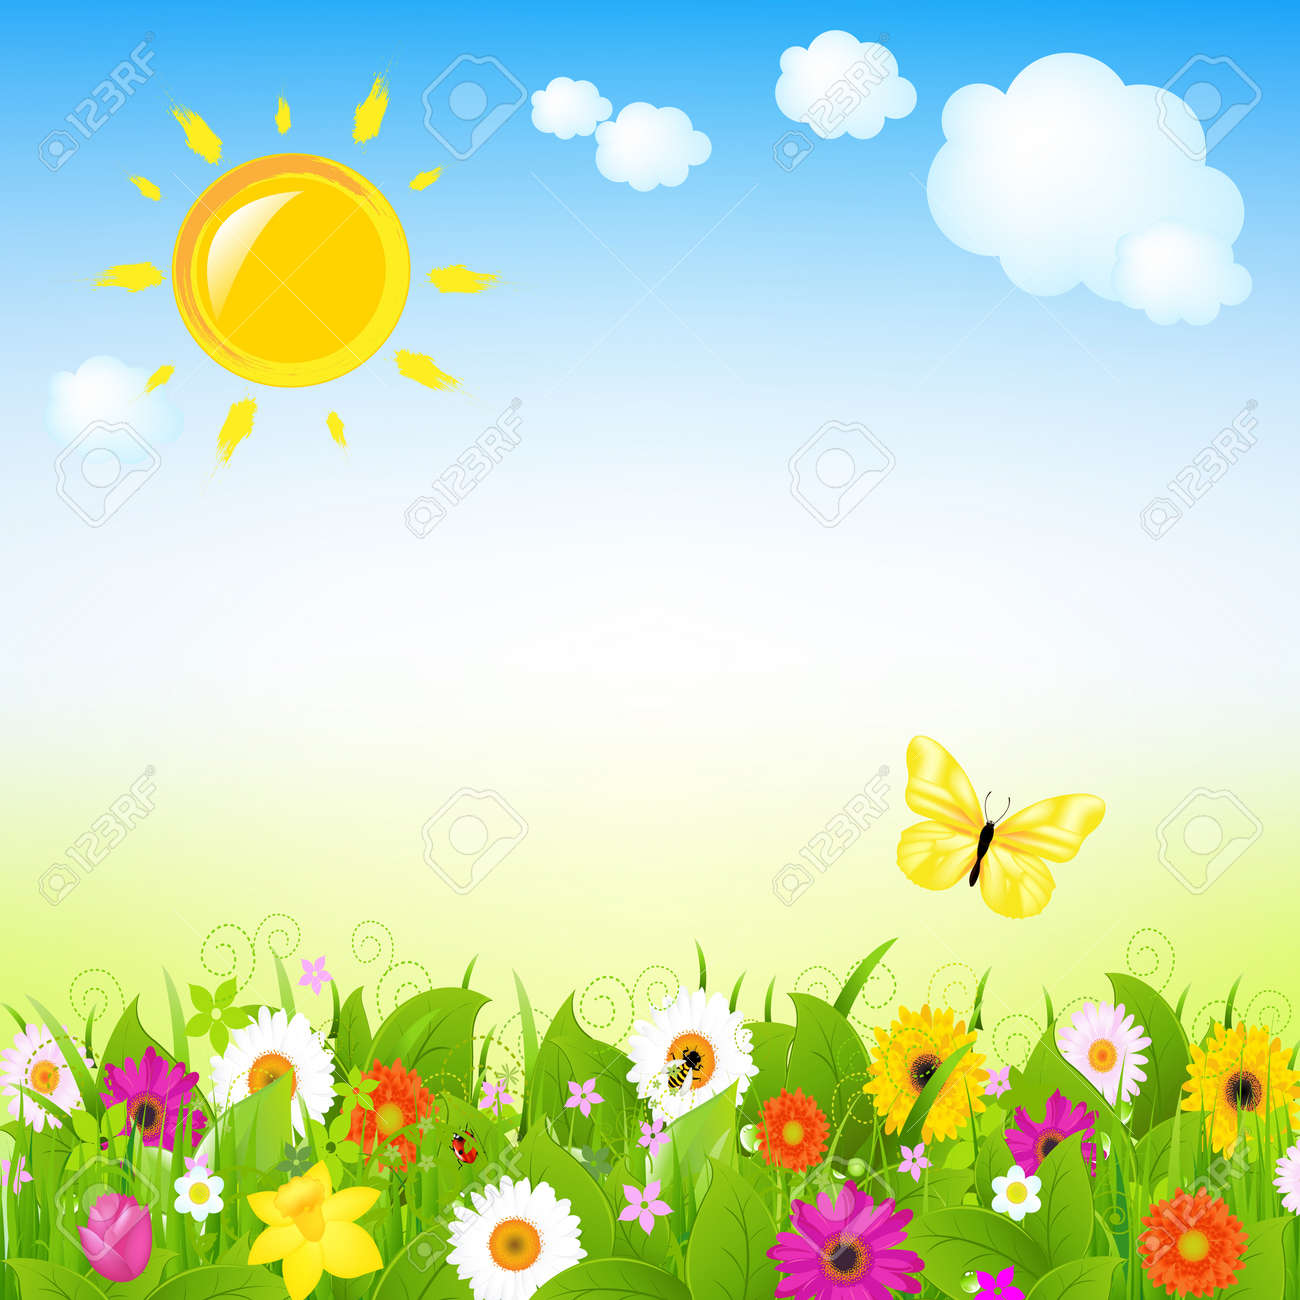 Sun And Flowers With Cloud,  Illustration Stock Vector - 15586091